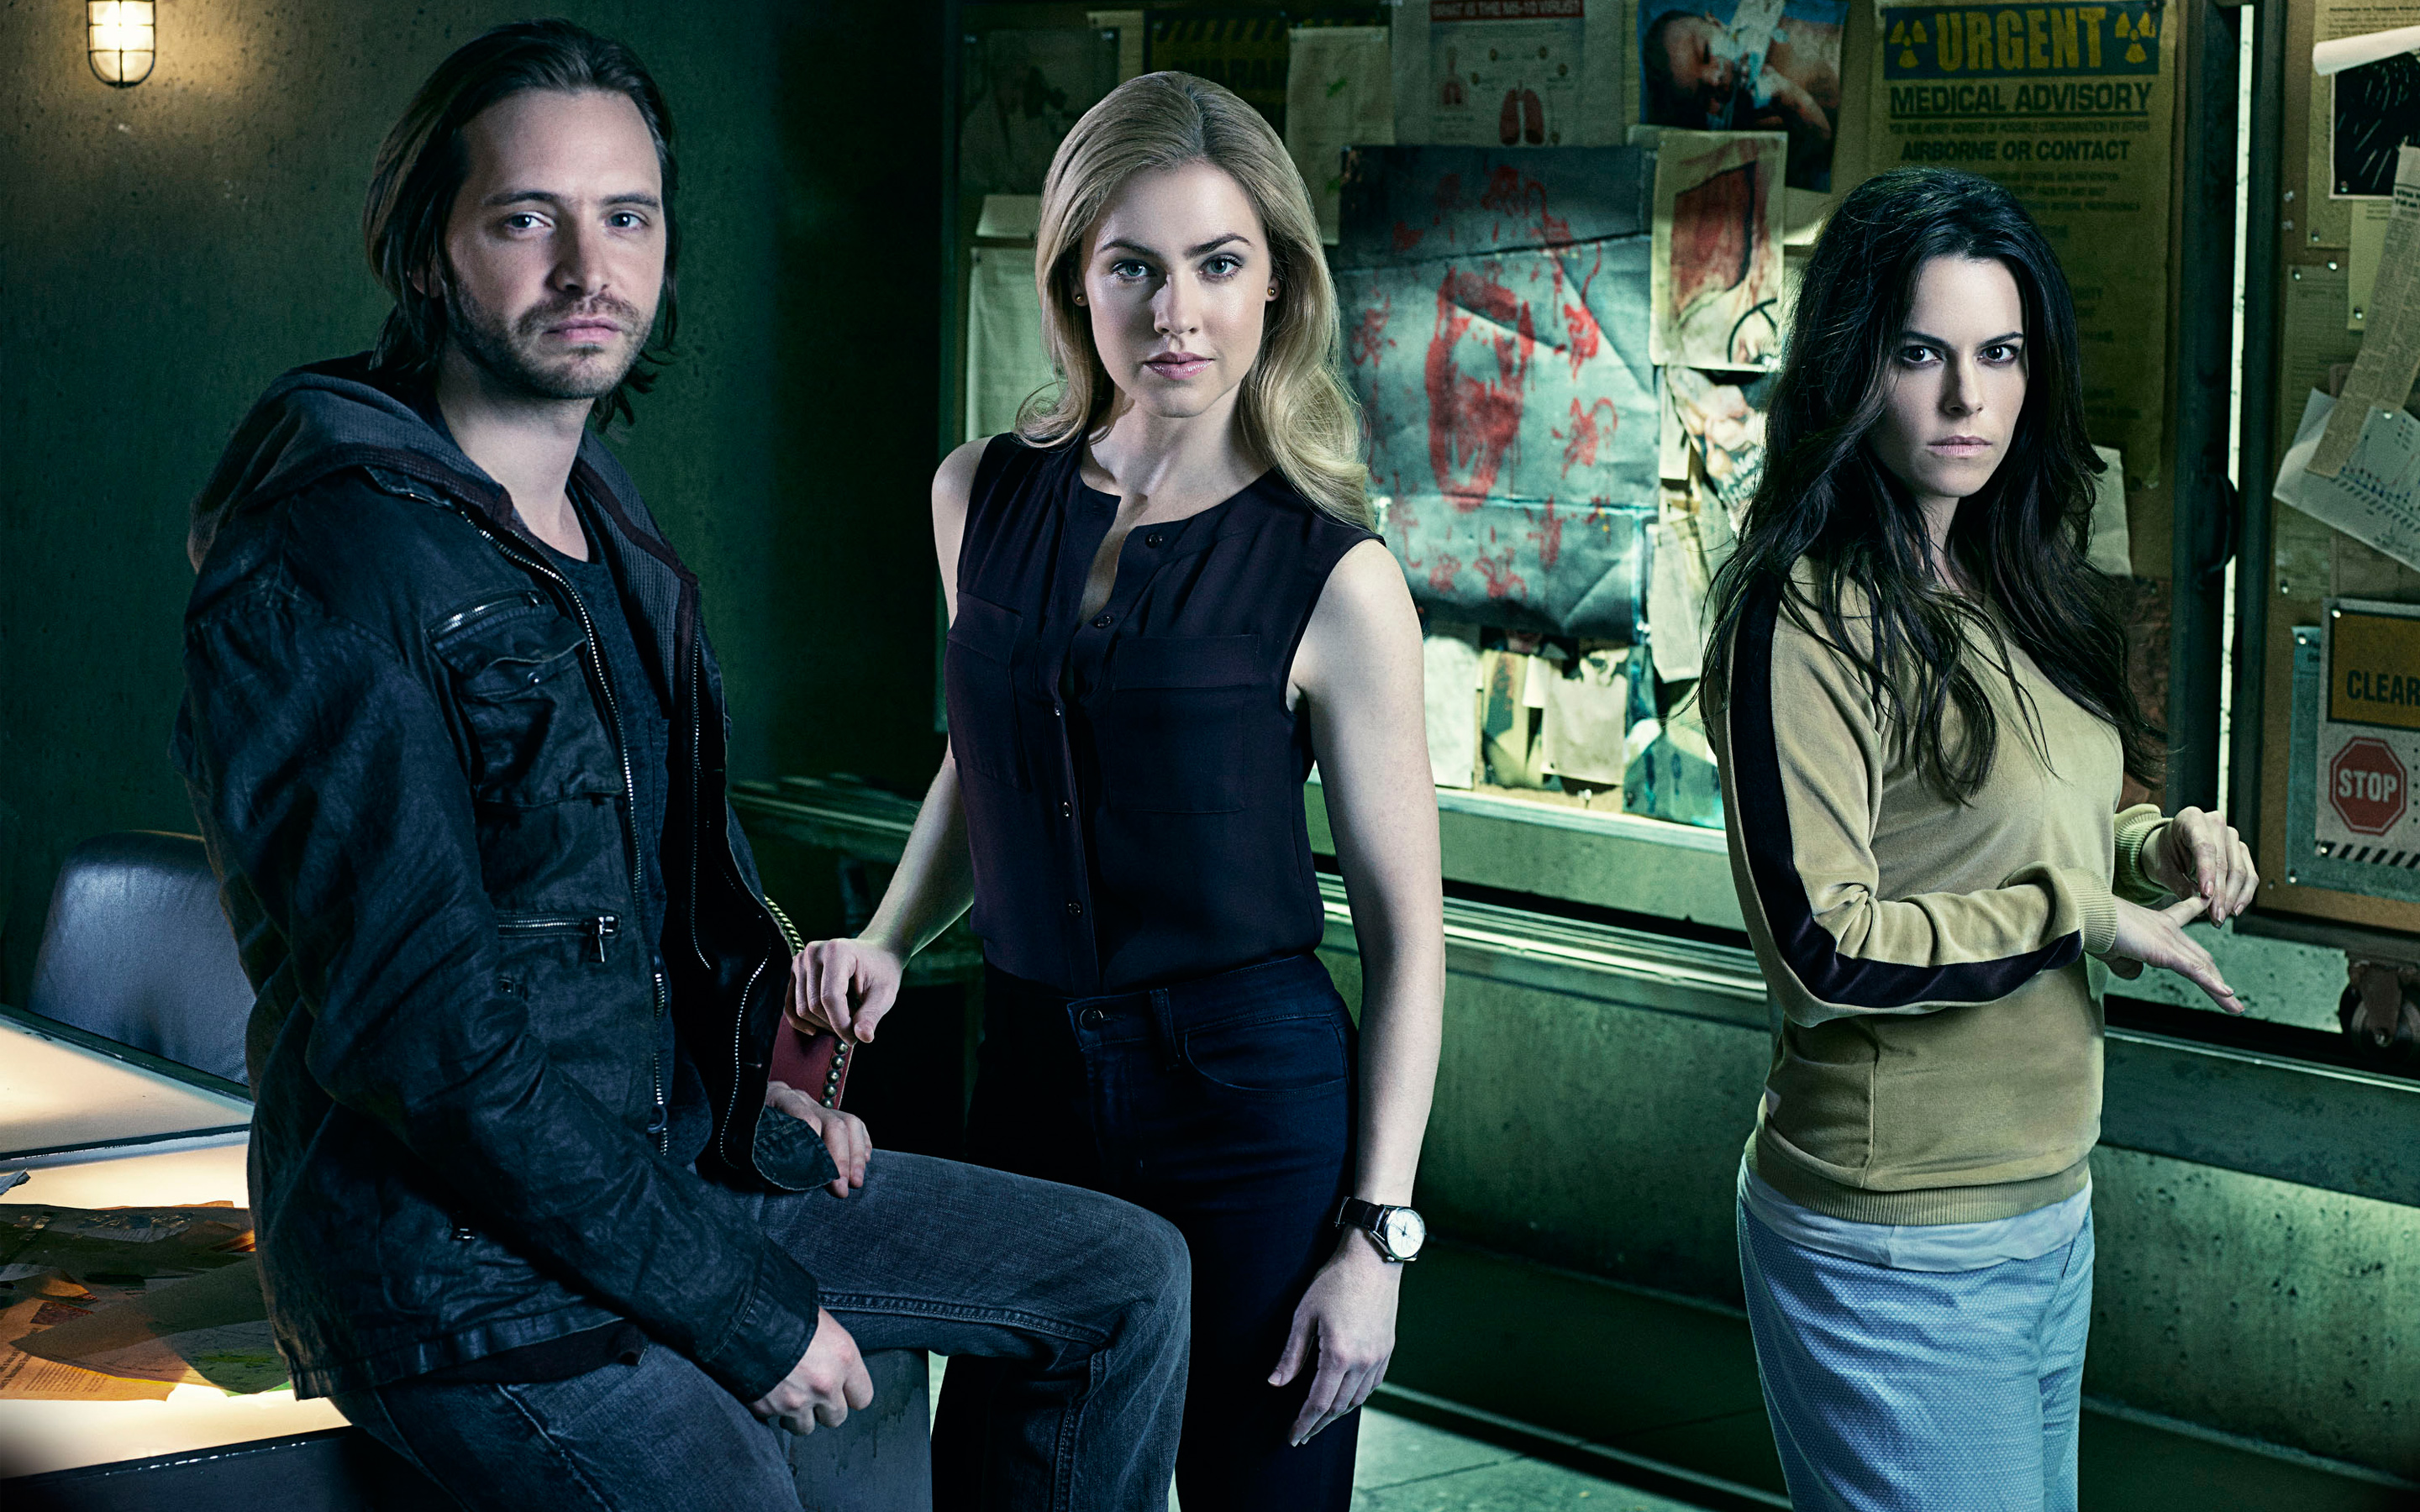 12 Monkeys 2015 TV Series